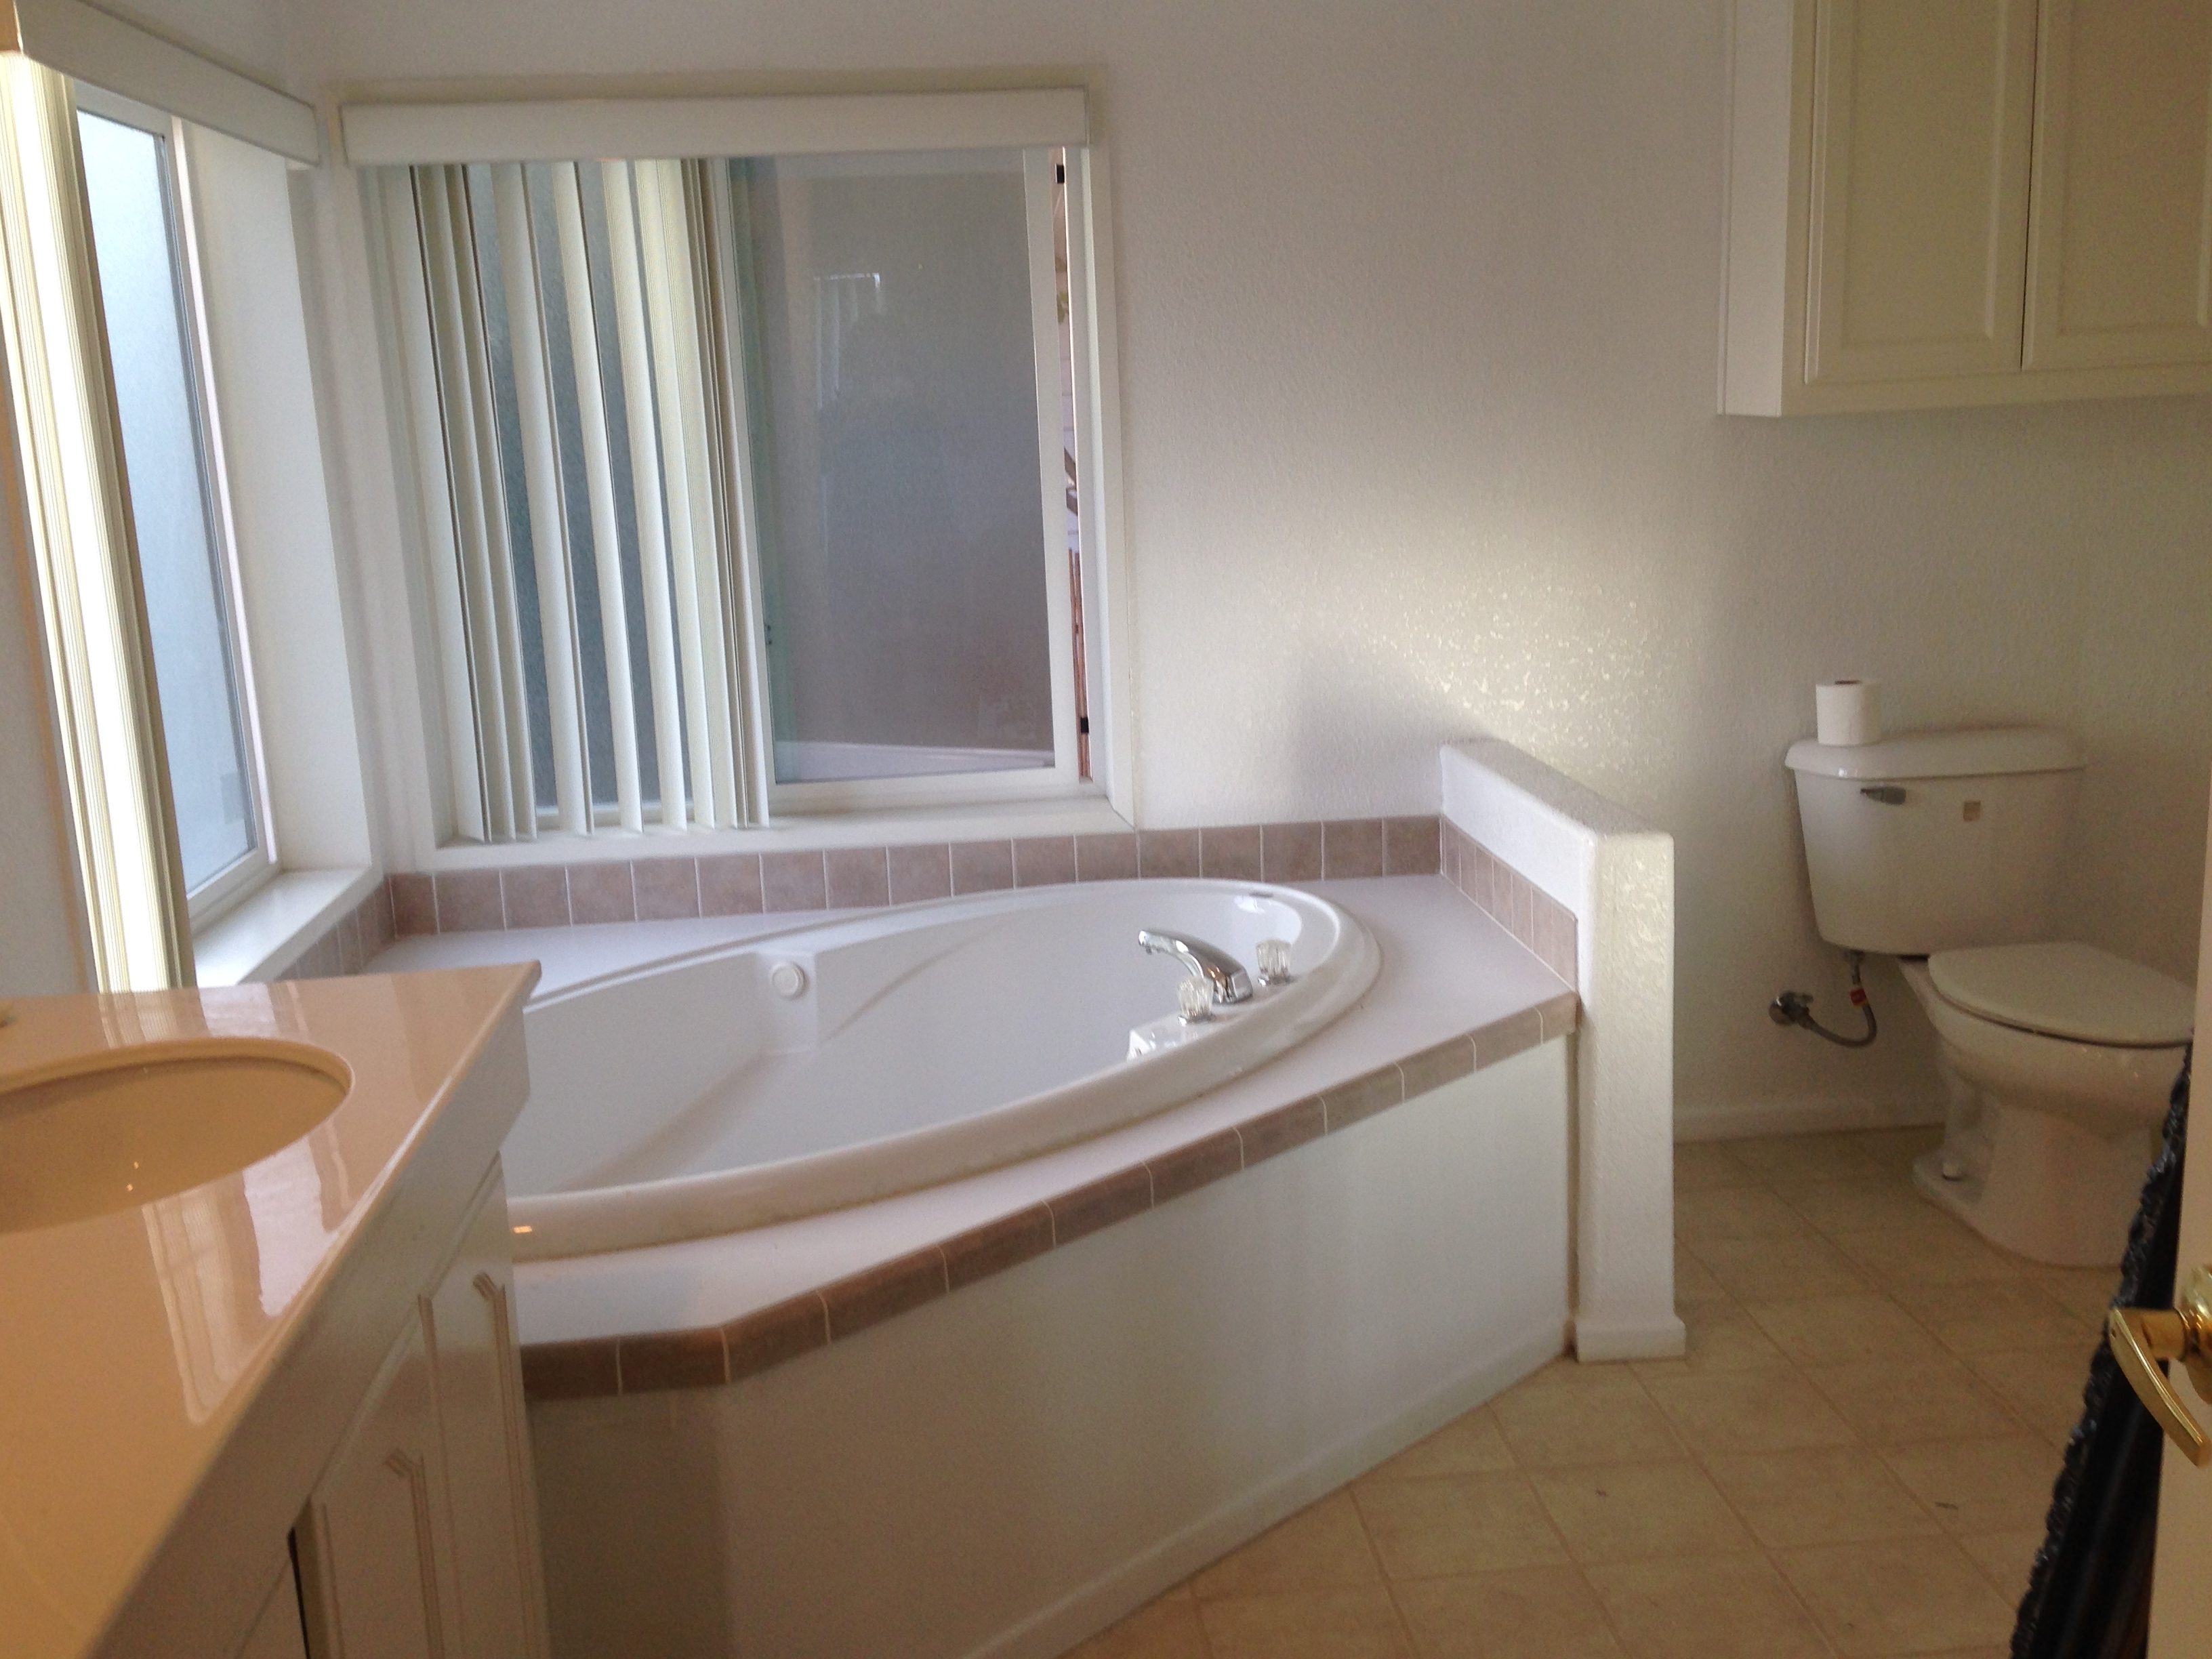 This Shows The Bathroom As It Was When I Purchased